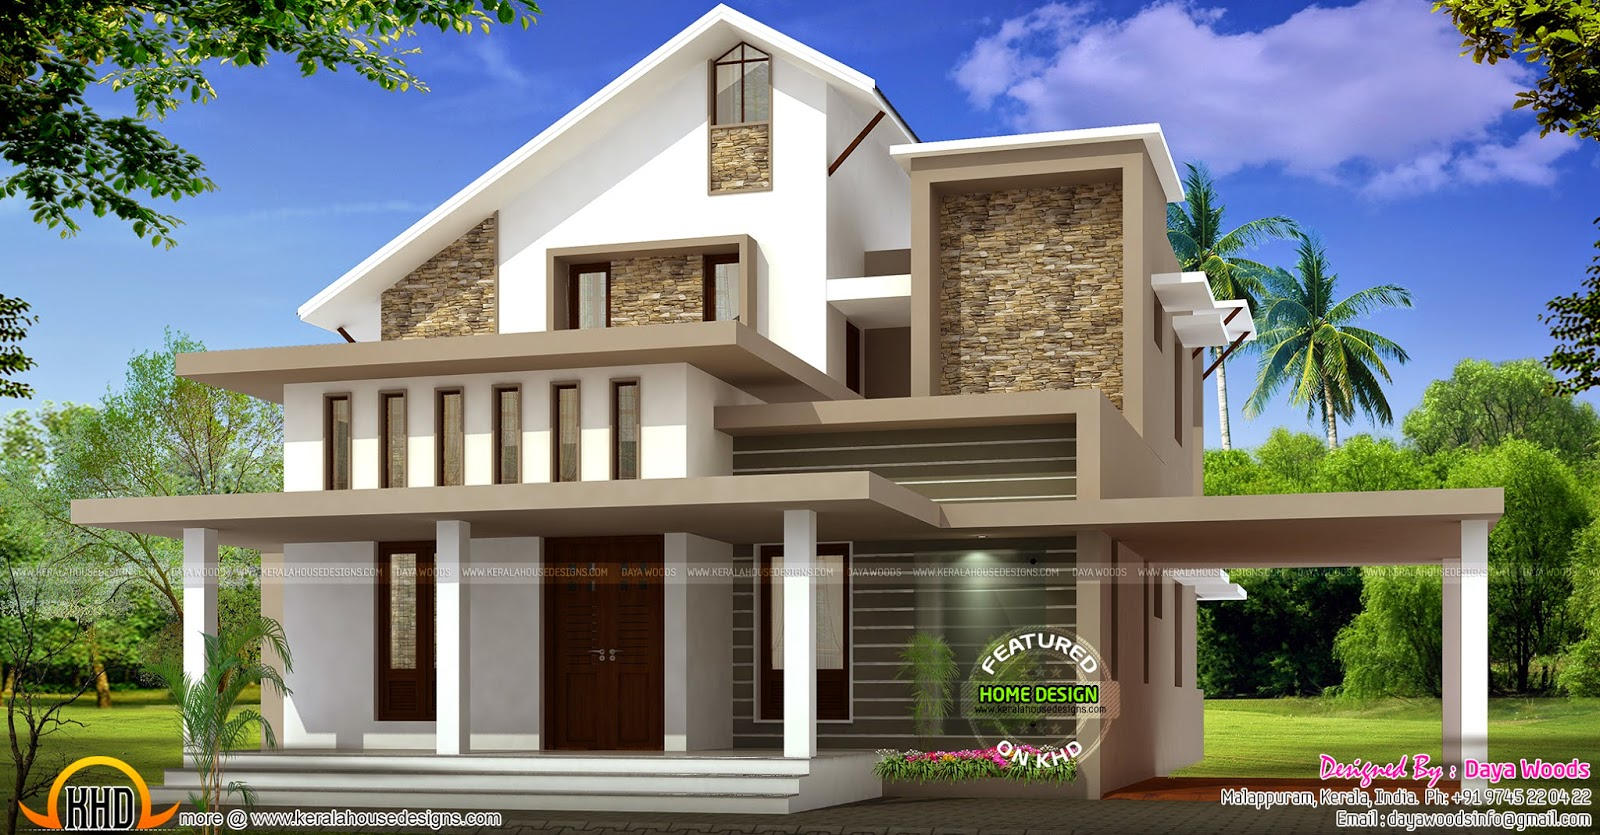 Low budget semi contemporary home kerala home design and floor plans Home design and budget